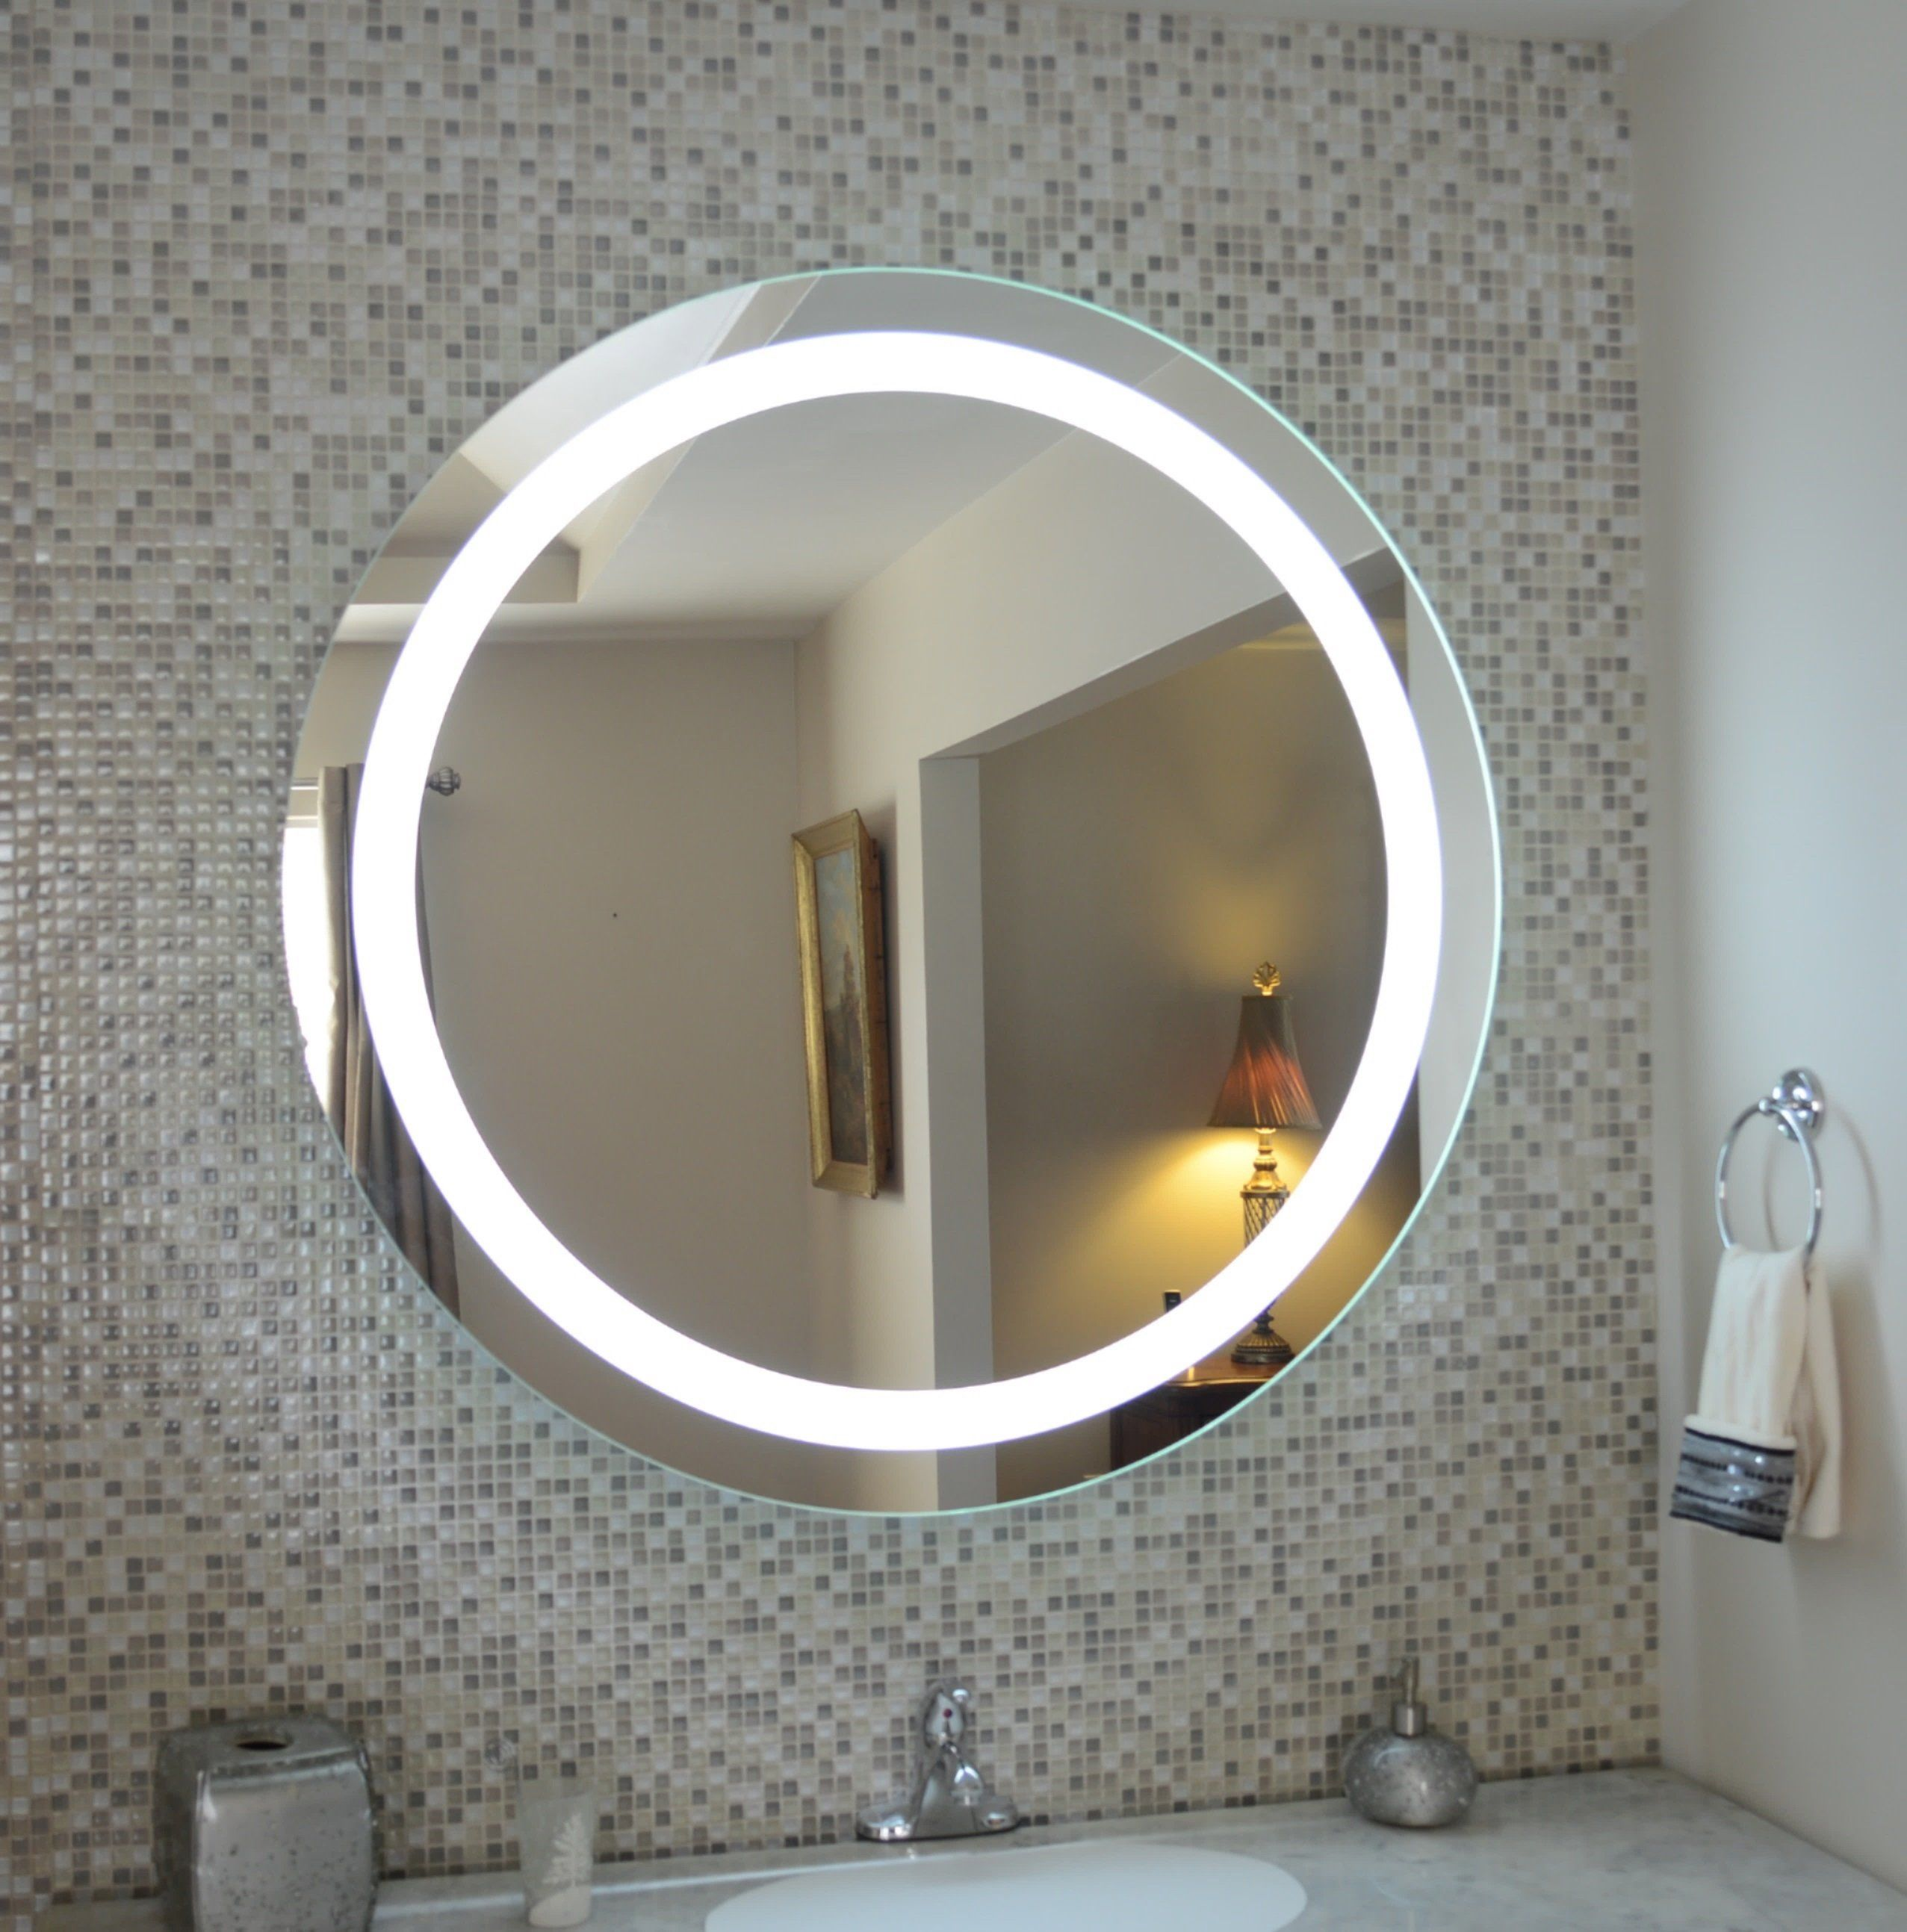 Front Lighted Led Bathroom Vanity Mirror 40 Wide X 40 Tall Round Wall Mounted Lighted Vanity Mirror Bathroom Mirror Mirror